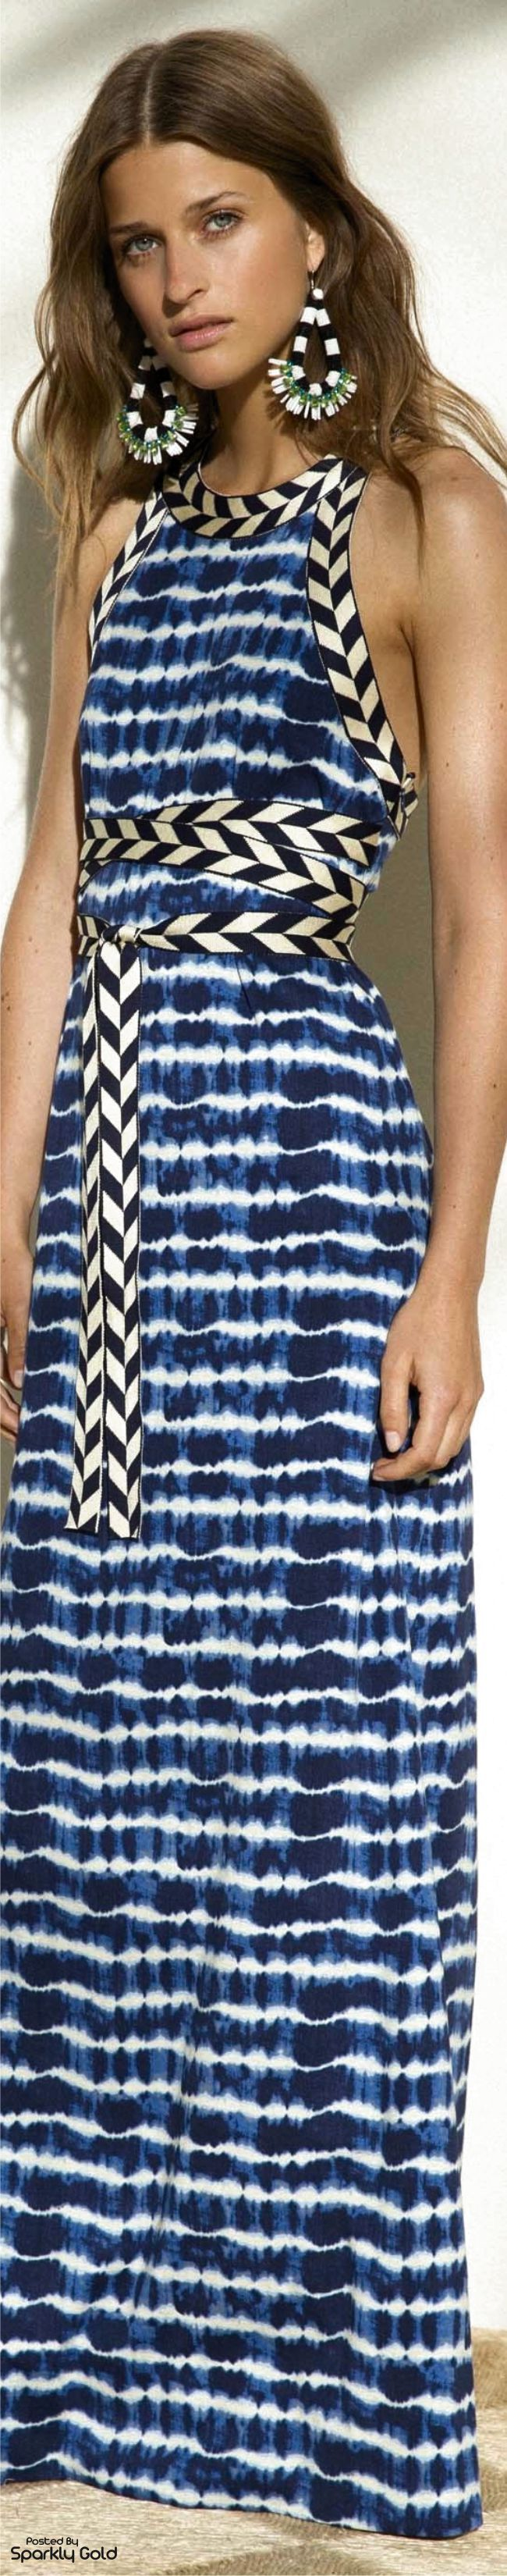 Tory Burch Resort 2017  Silky soft, hand dyed scarf, original art work, one of a kind and handmade. Best, original, silk scarves, silky soft, hand dyed, each stroke is strategically placed, one of a kind, original works of art, every fashionista owns one - get yours today! etsy.com/shop/SowingAcorns